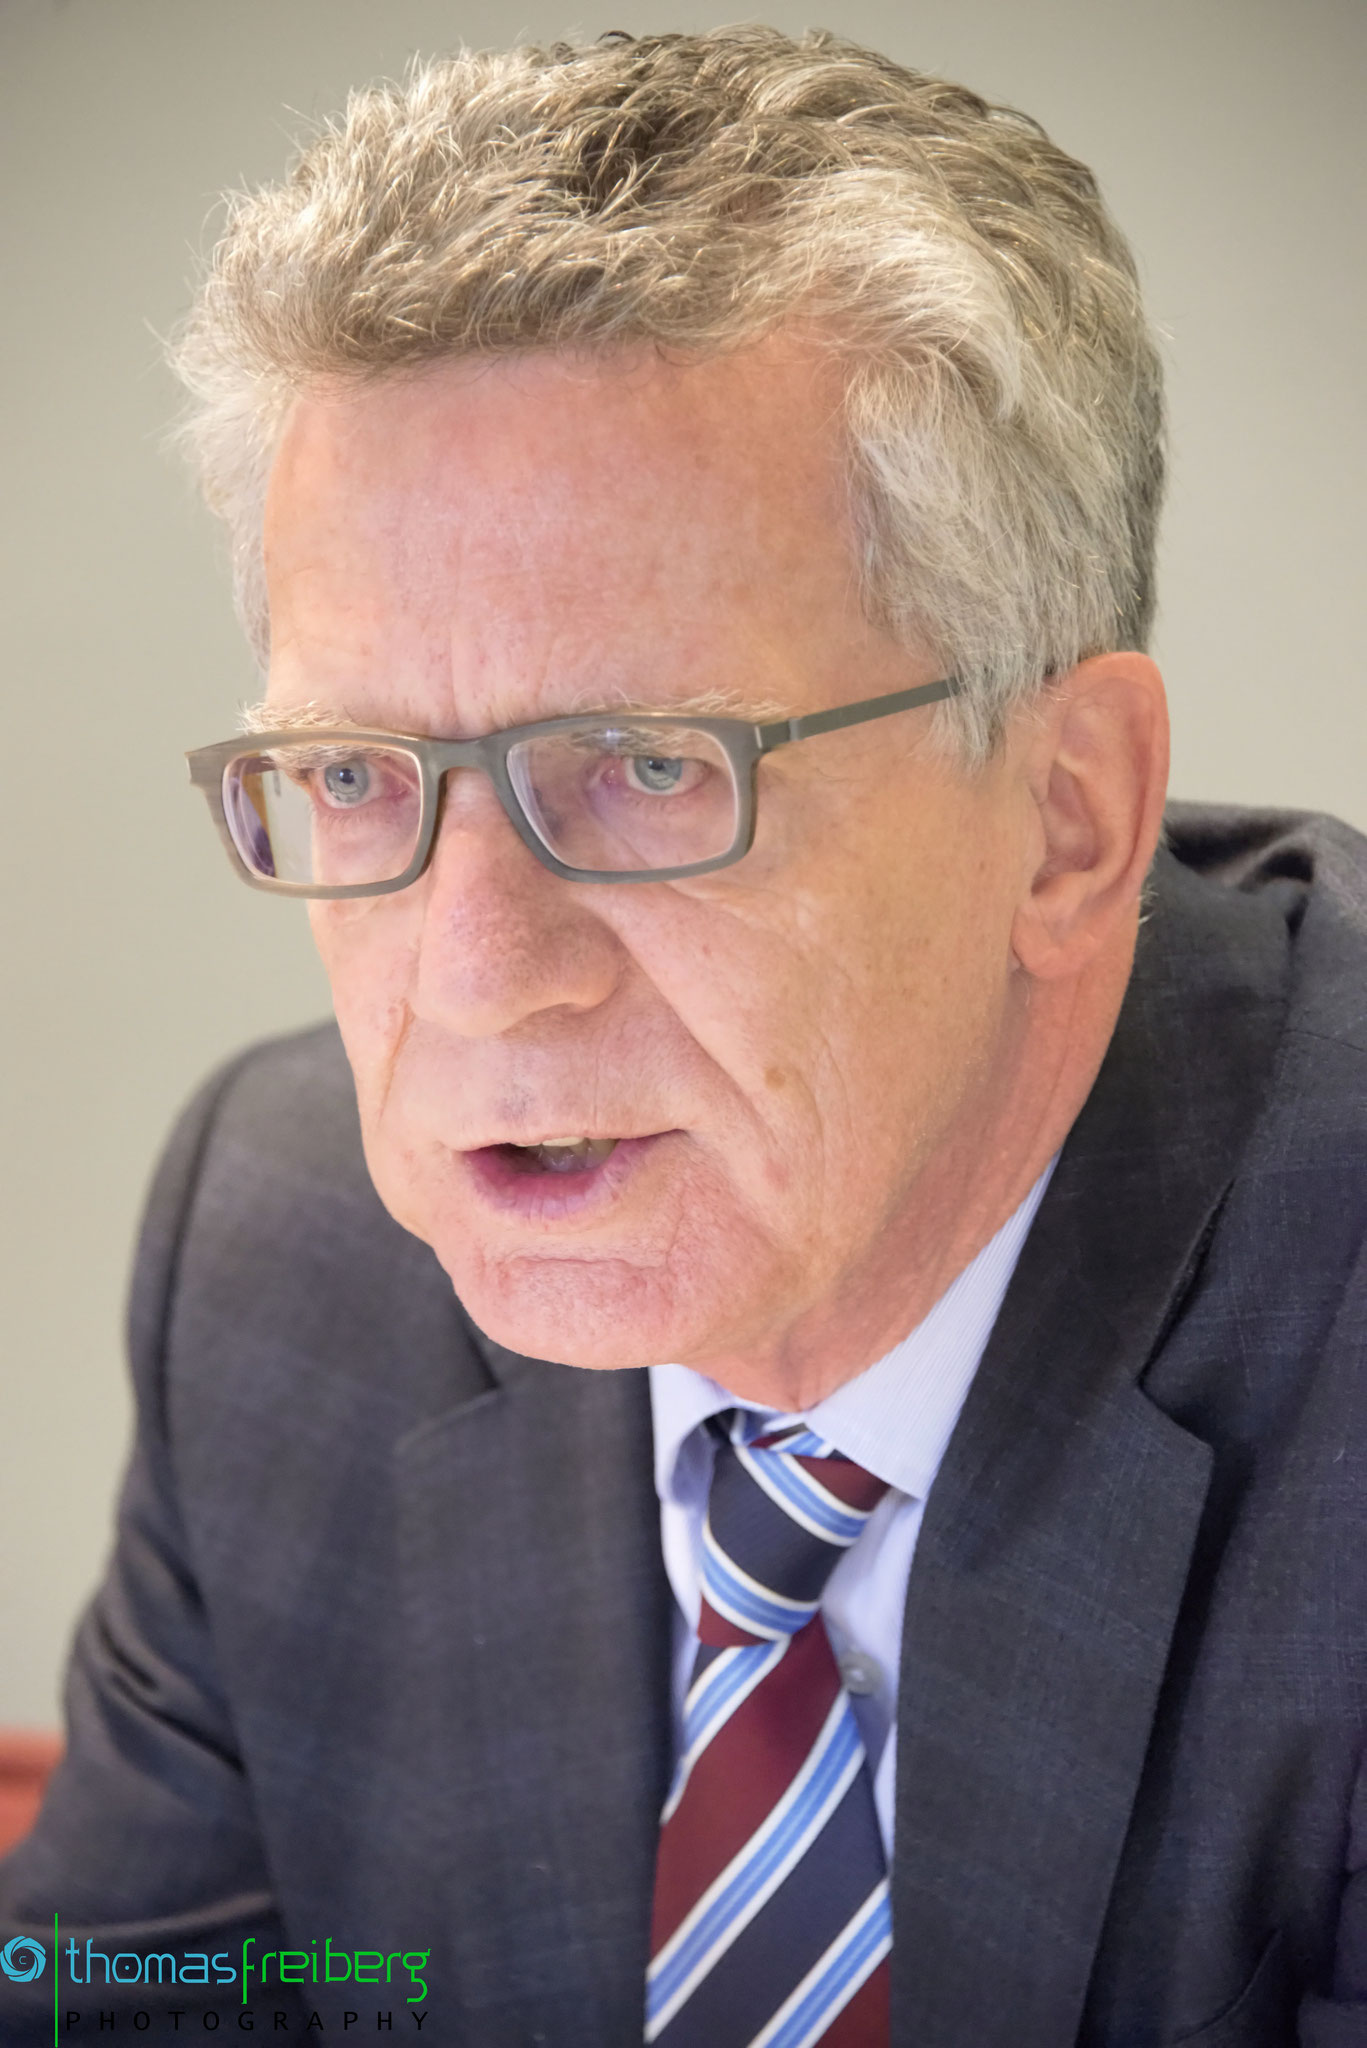 Thomas de Maiziere - Copyright © - Thomas Freiberg - All Rights reserved.